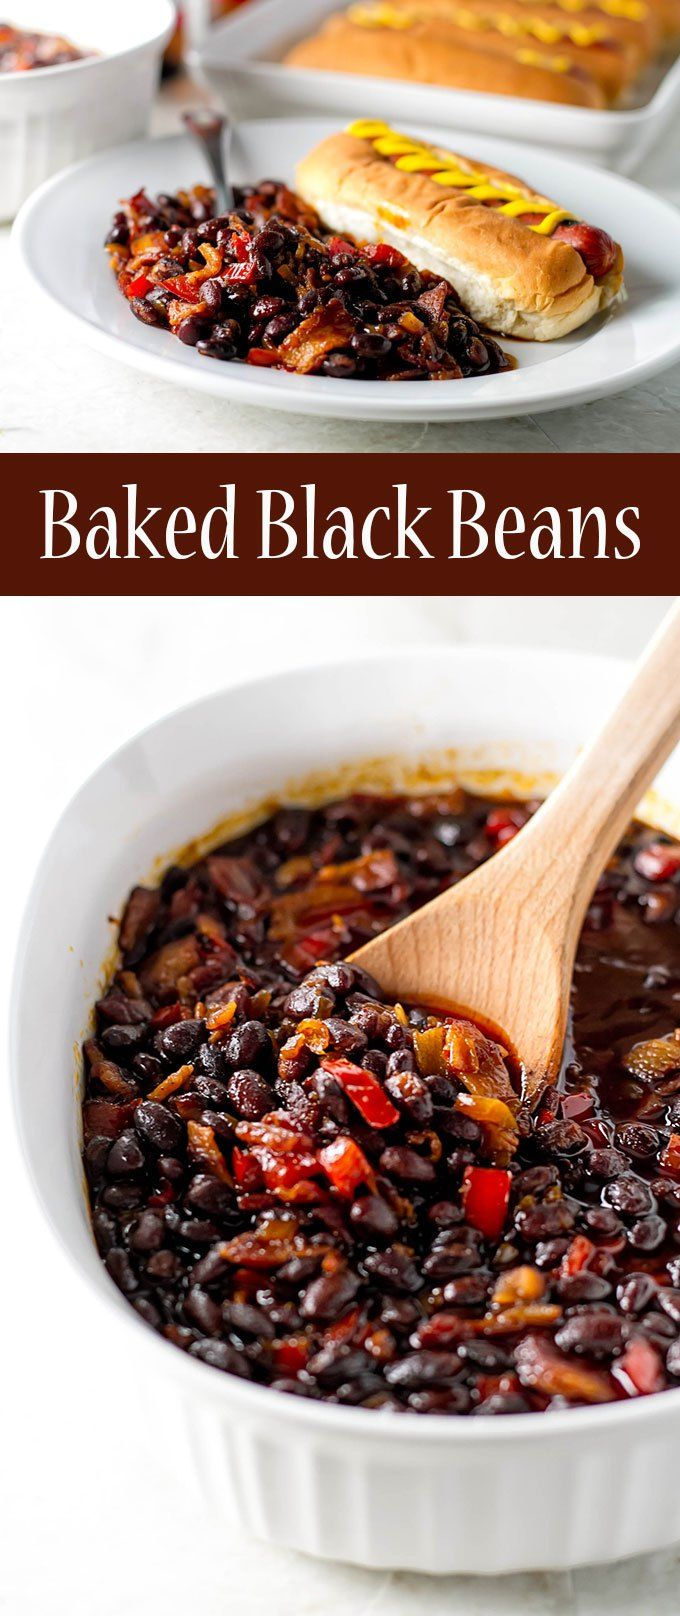 These baked black beans are perfect for summer BBQs! | girlgonegourmet.com